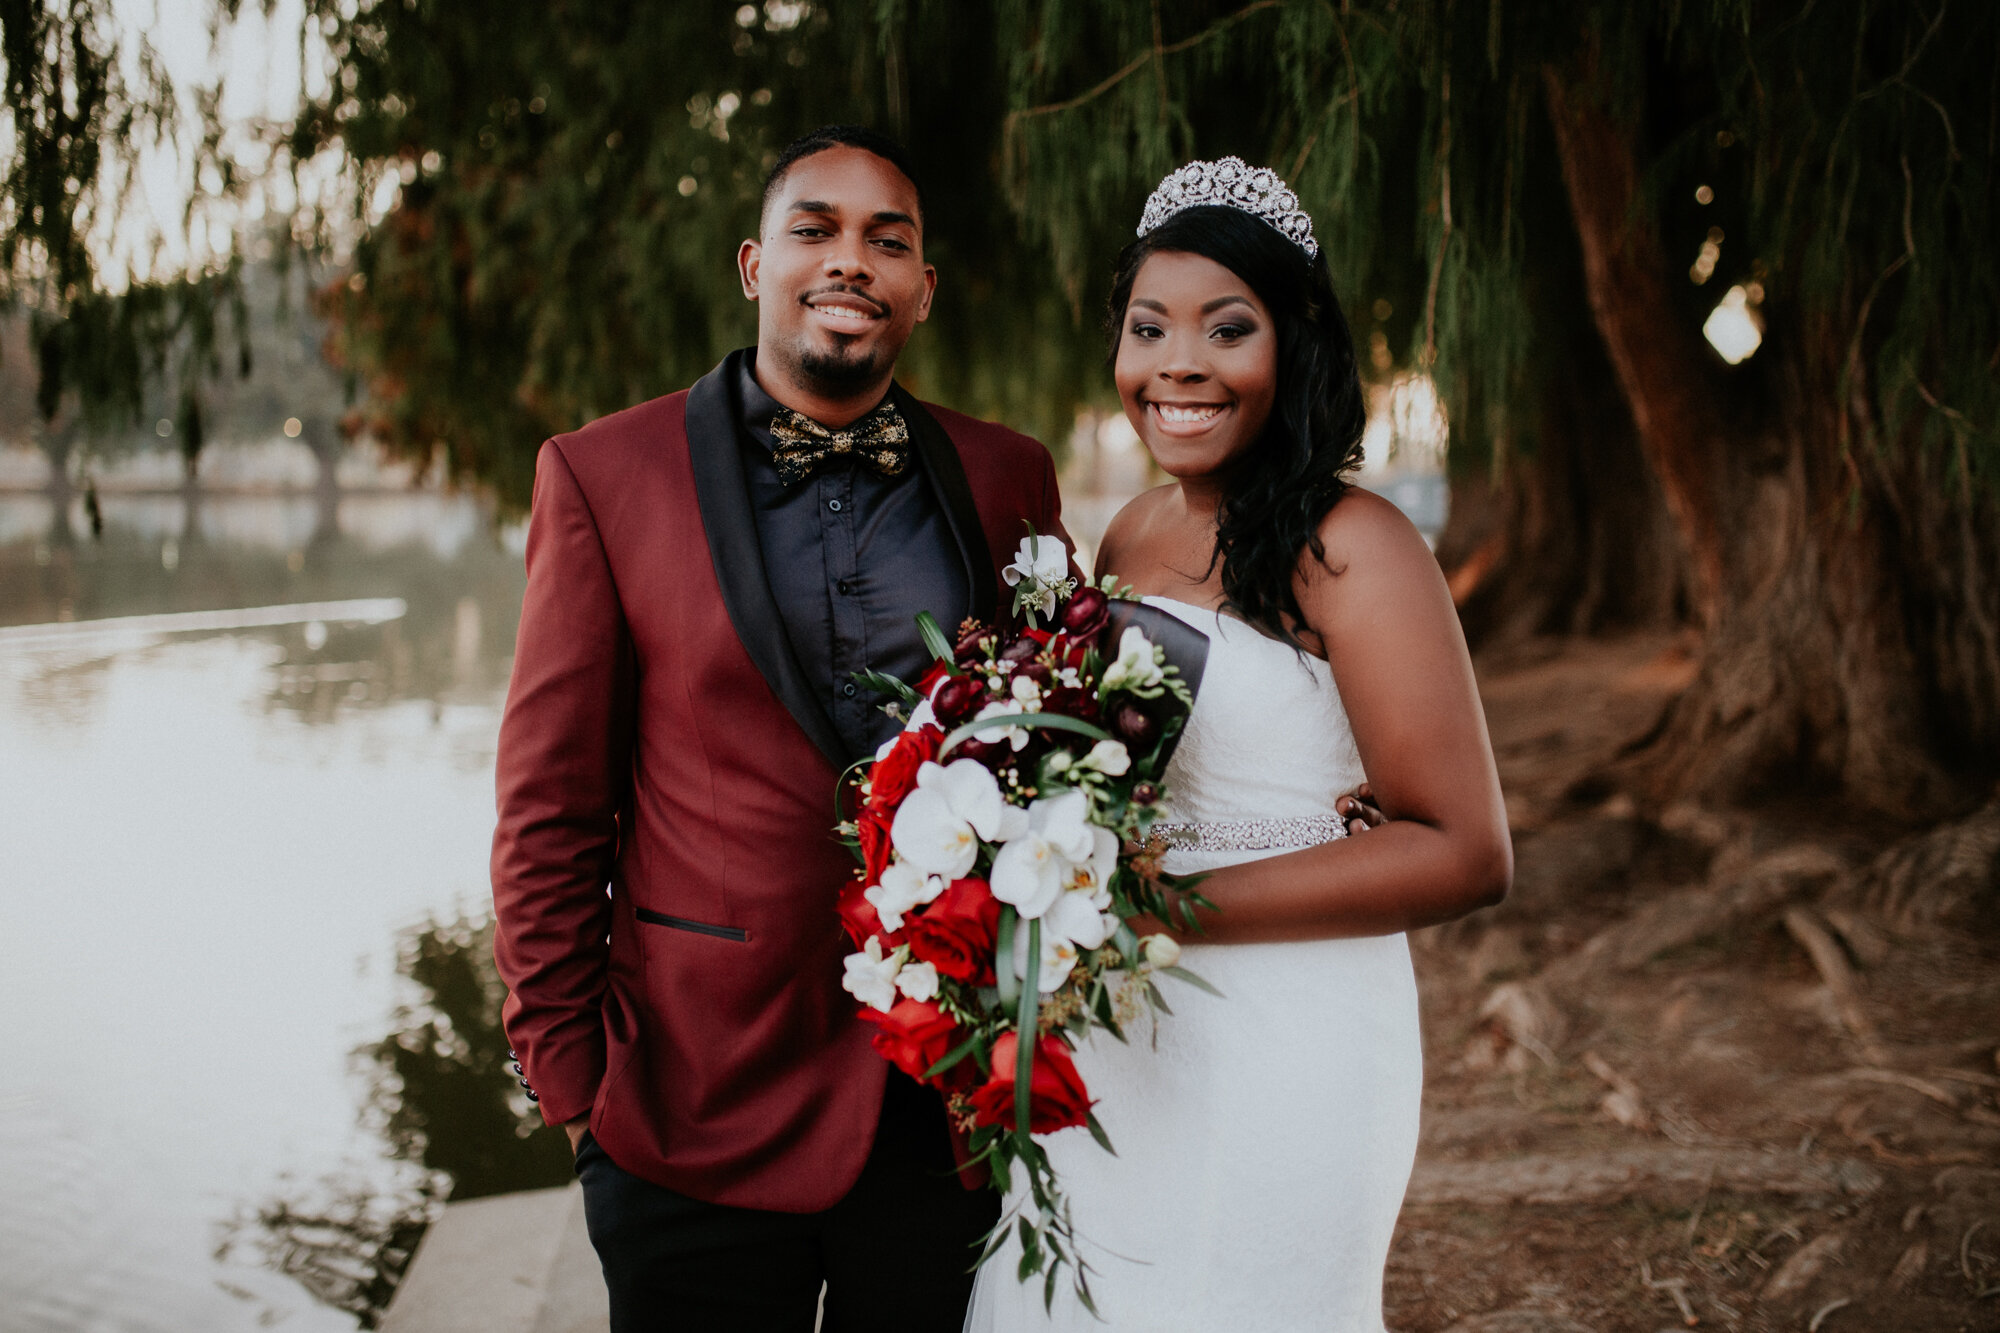 Mia & Rob - A beautiful, small and lovely wedding at the San Bernadino courthouse! Such a different kind of wedding but still equally as beautiful and moving to be apart of.